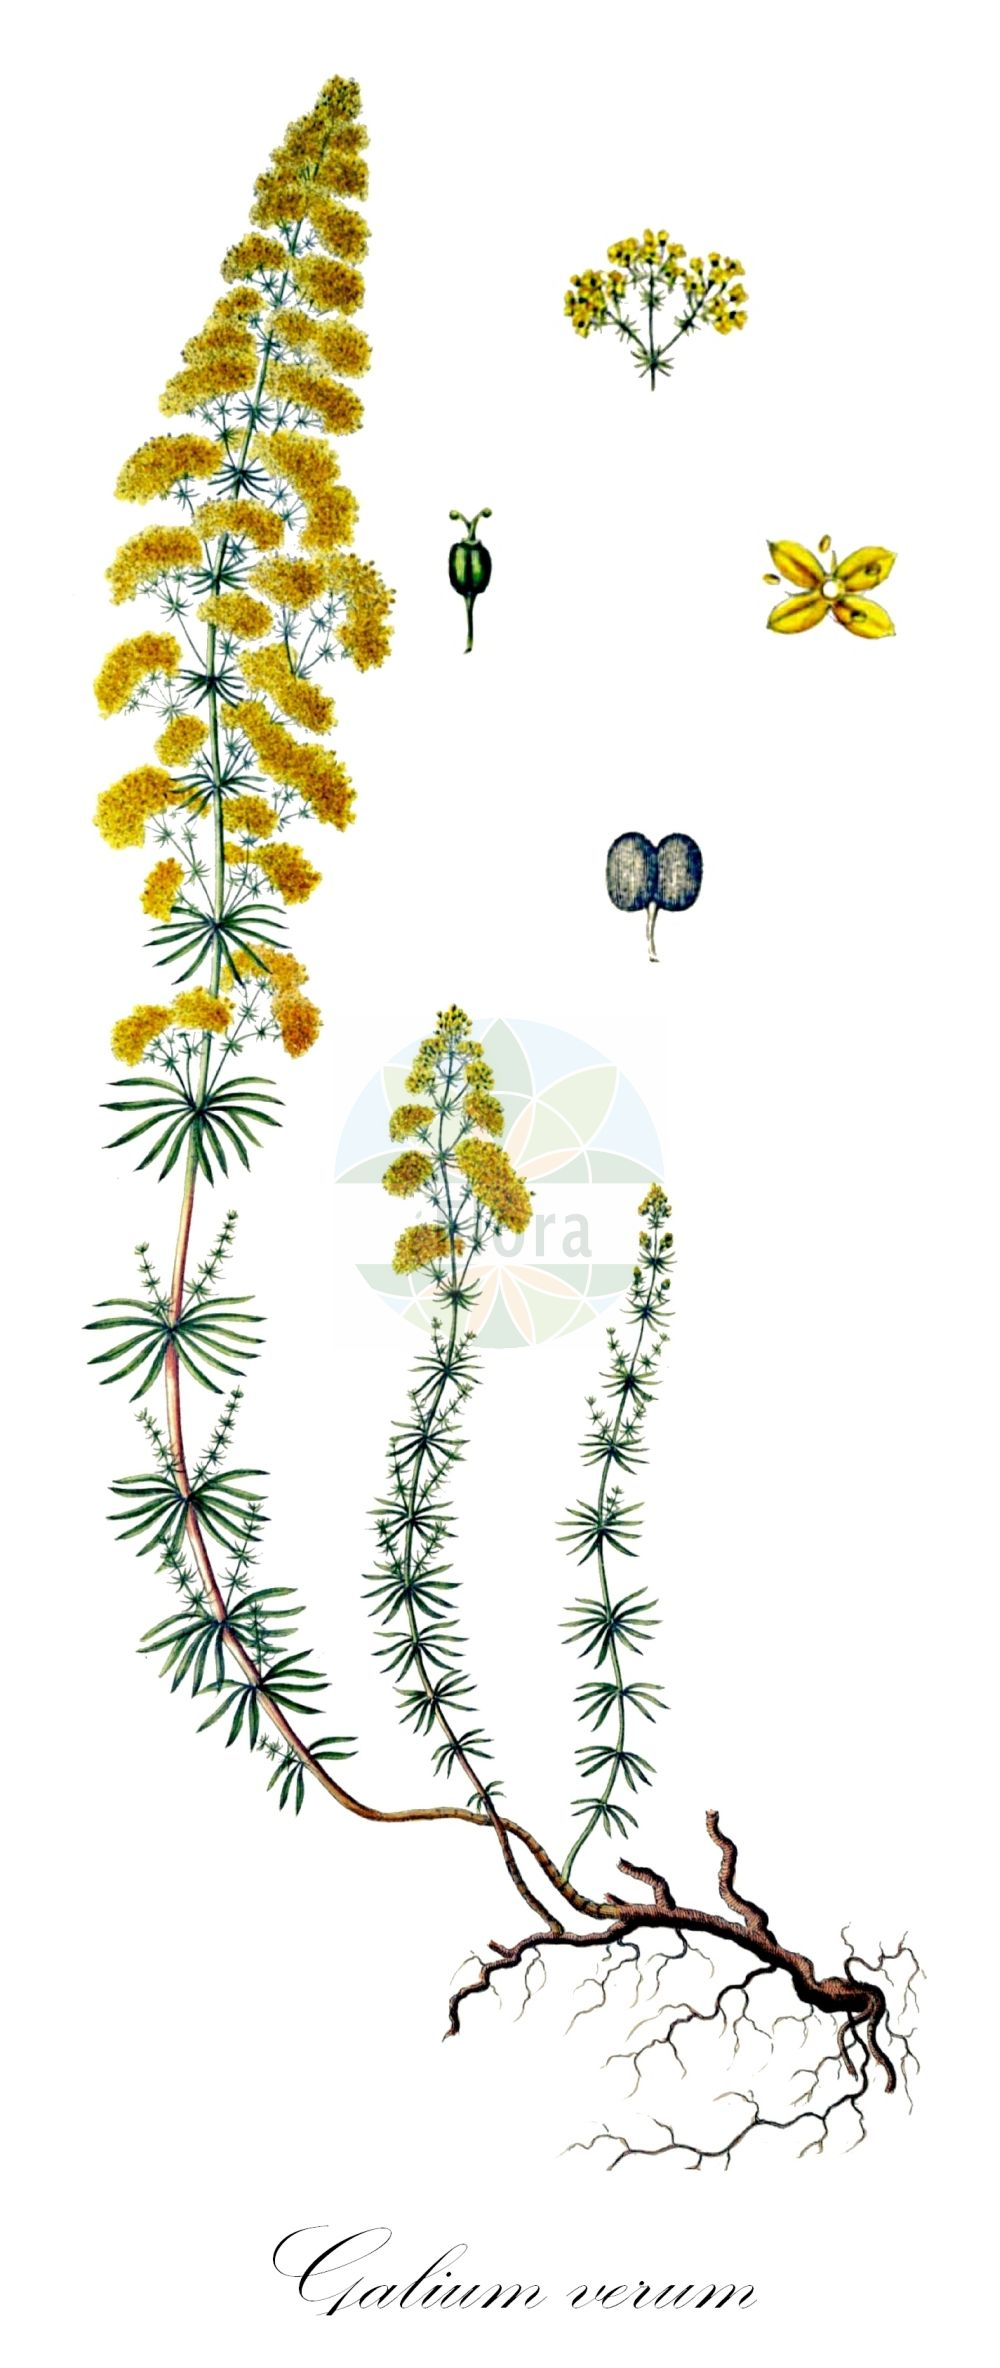 Historische Abbildung von Galium verum (Echtes Labkraut - Lady's Bedstraw). Das Bild zeigt Blatt, Bluete, Frucht und Same. ---- Historical Drawing of Galium verum (Echtes Labkraut - Lady's Bedstraw).The image is showing leaf, flower, fruit and seed.(Galium verum,Echtes Labkraut,Lady's Bedstraw,Gelbes Labkraut,Galium,Labkraut,Bedstraw,Rubiaceae,Roetegewaechse;Kaffeegewaechse;Krappgewaechse;Labkrautgewaechse,Bedstraw family,Blatt,Bluete,Frucht,Same,leaf,flower,fruit,seed,Oeder (1761-1883))